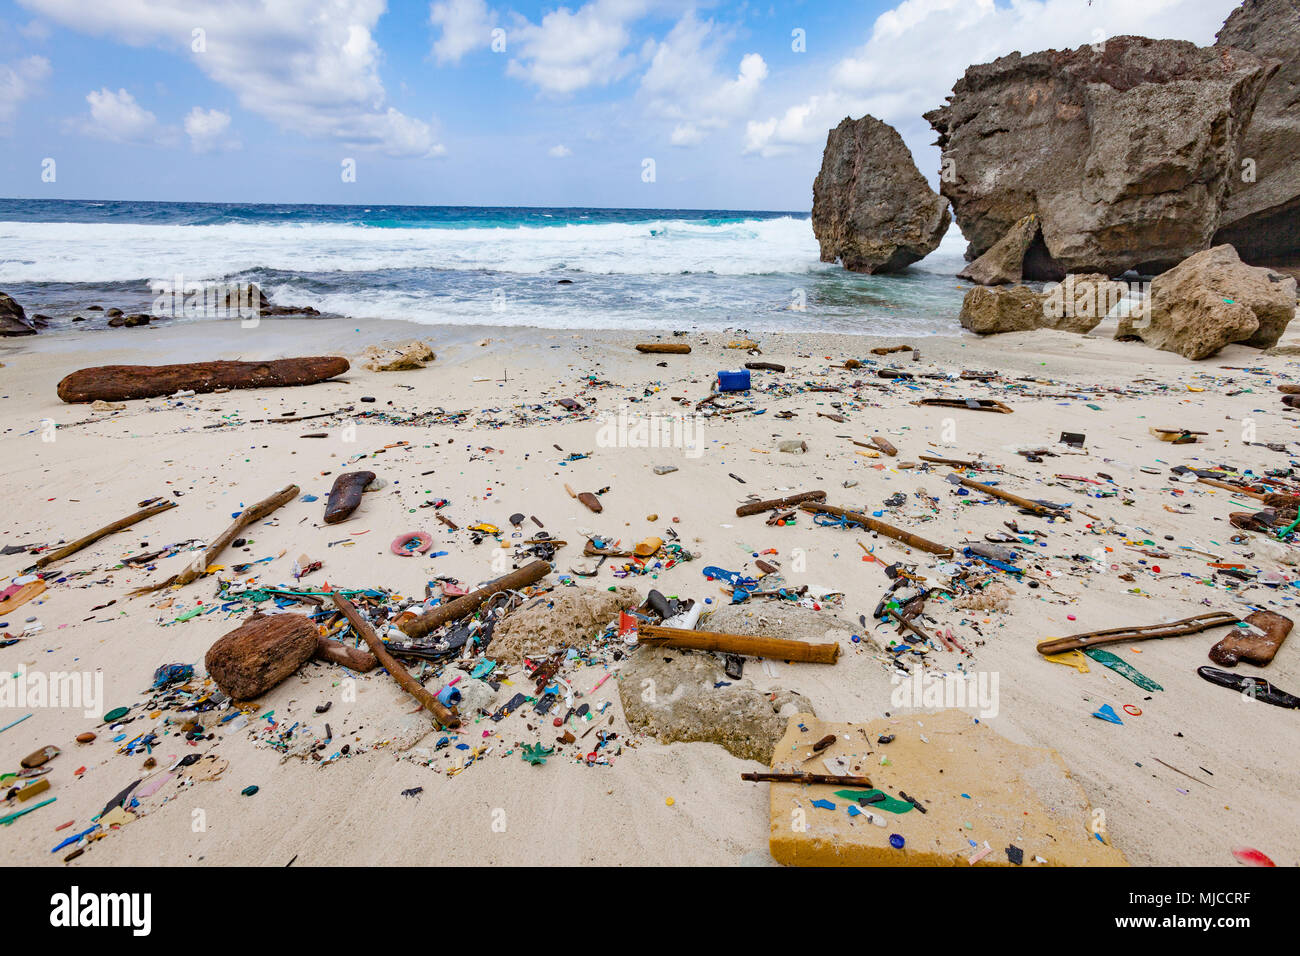 Plastic garbage on the beach of the island Christmas Island in the Indian Ocean - Stock Image